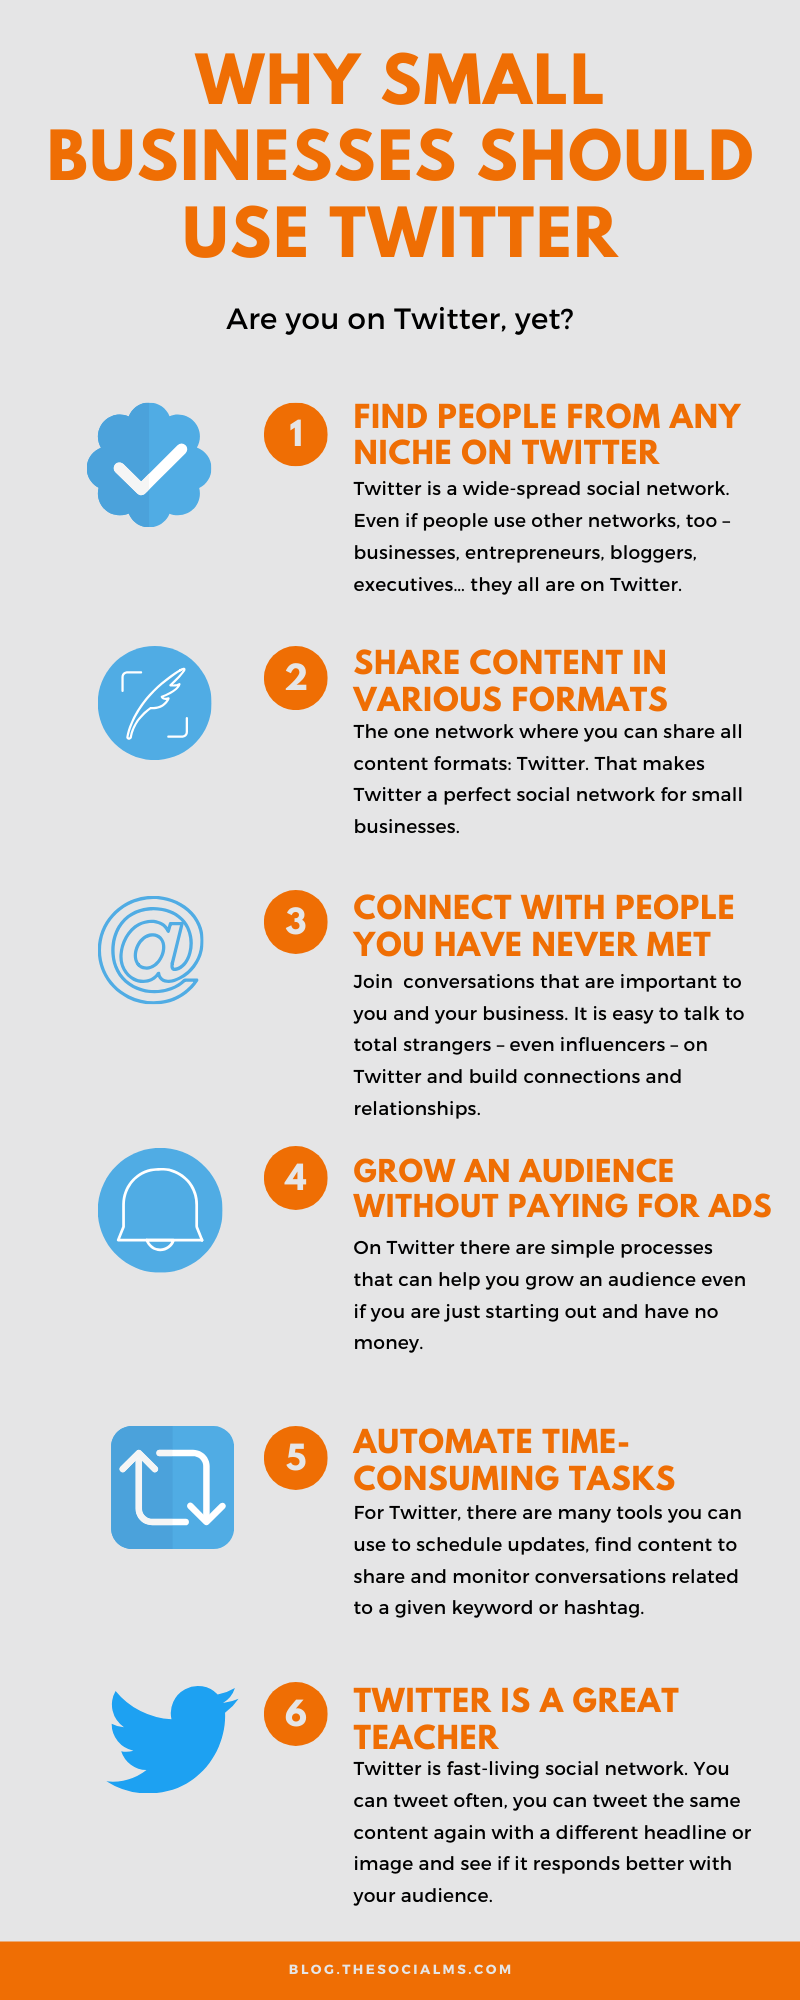 Twitter has a special place for small business marketing and here are the reasons why you should consider Twitter for marketing, too #twitter #twittermarketing #twittertips #twitterstrategy #smallbusinessmarketing #startupmarketing #onlinebusiness #socialmedia #socialmediatips #socialmediamarketing